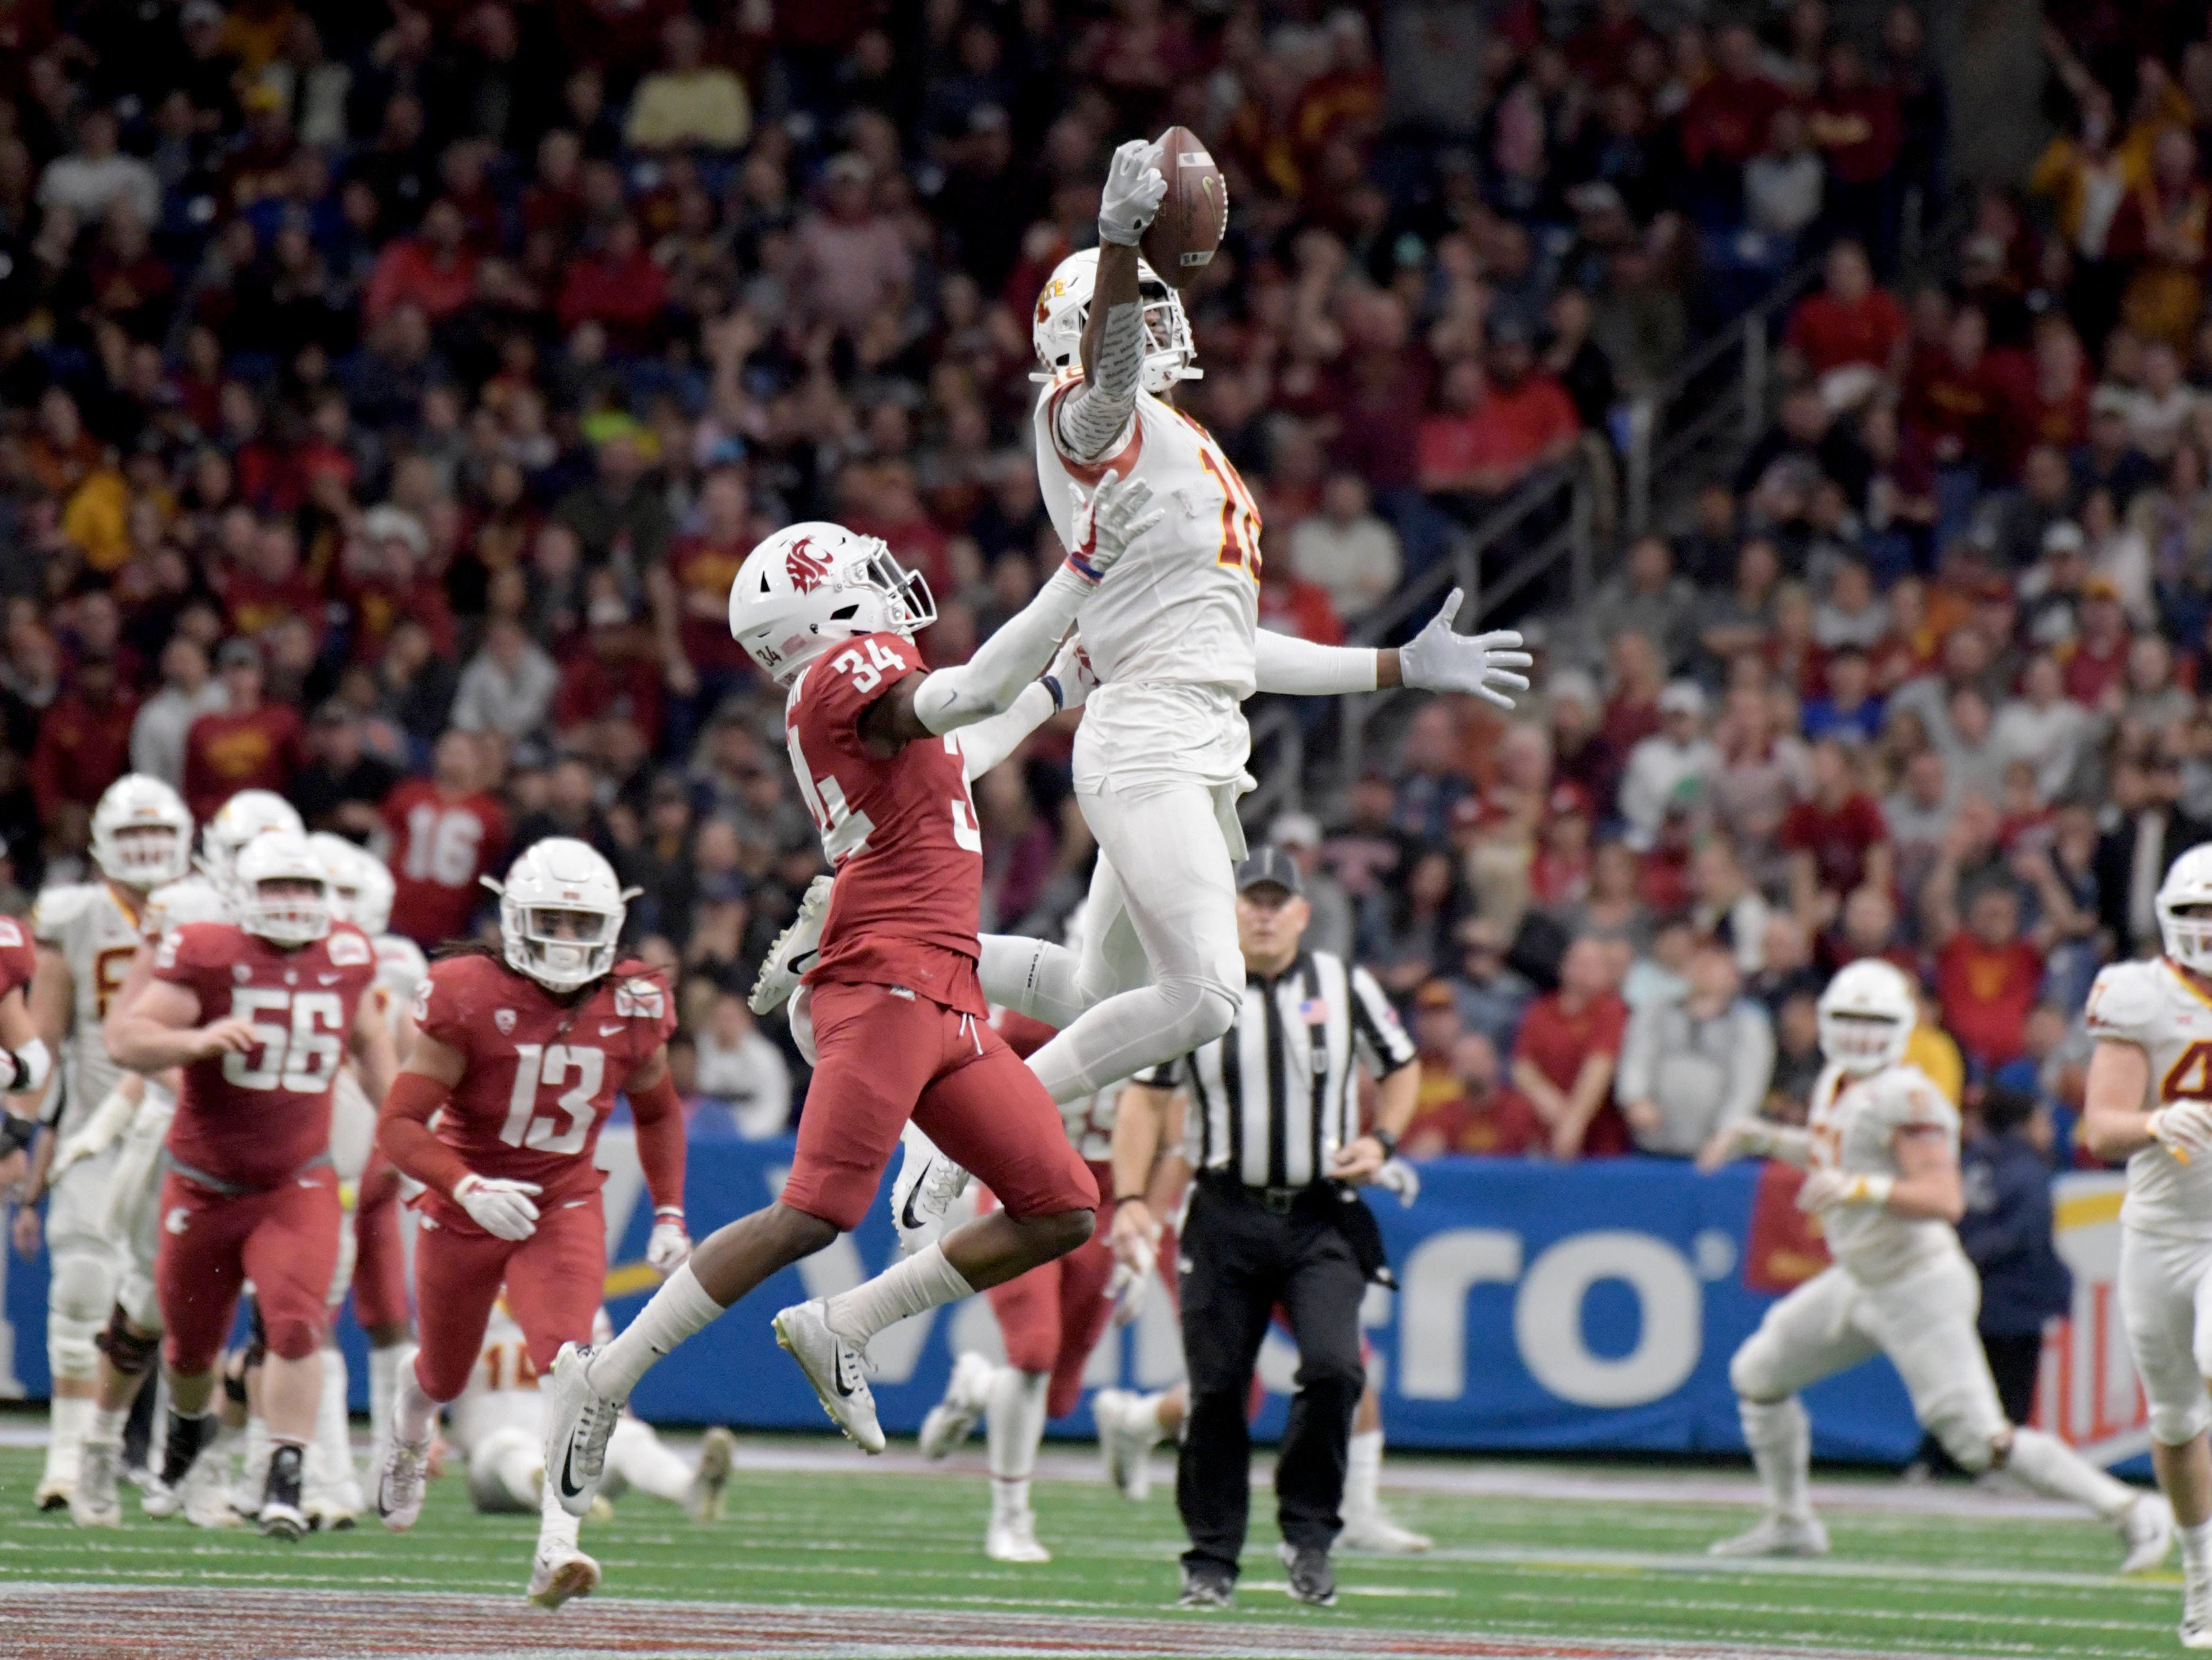 Iowa State receiver Hakeem Butler (18) makes a catch in front of Washington State safety Jalen Thompson (34) during  the Alamo Bowl at Alamodome.